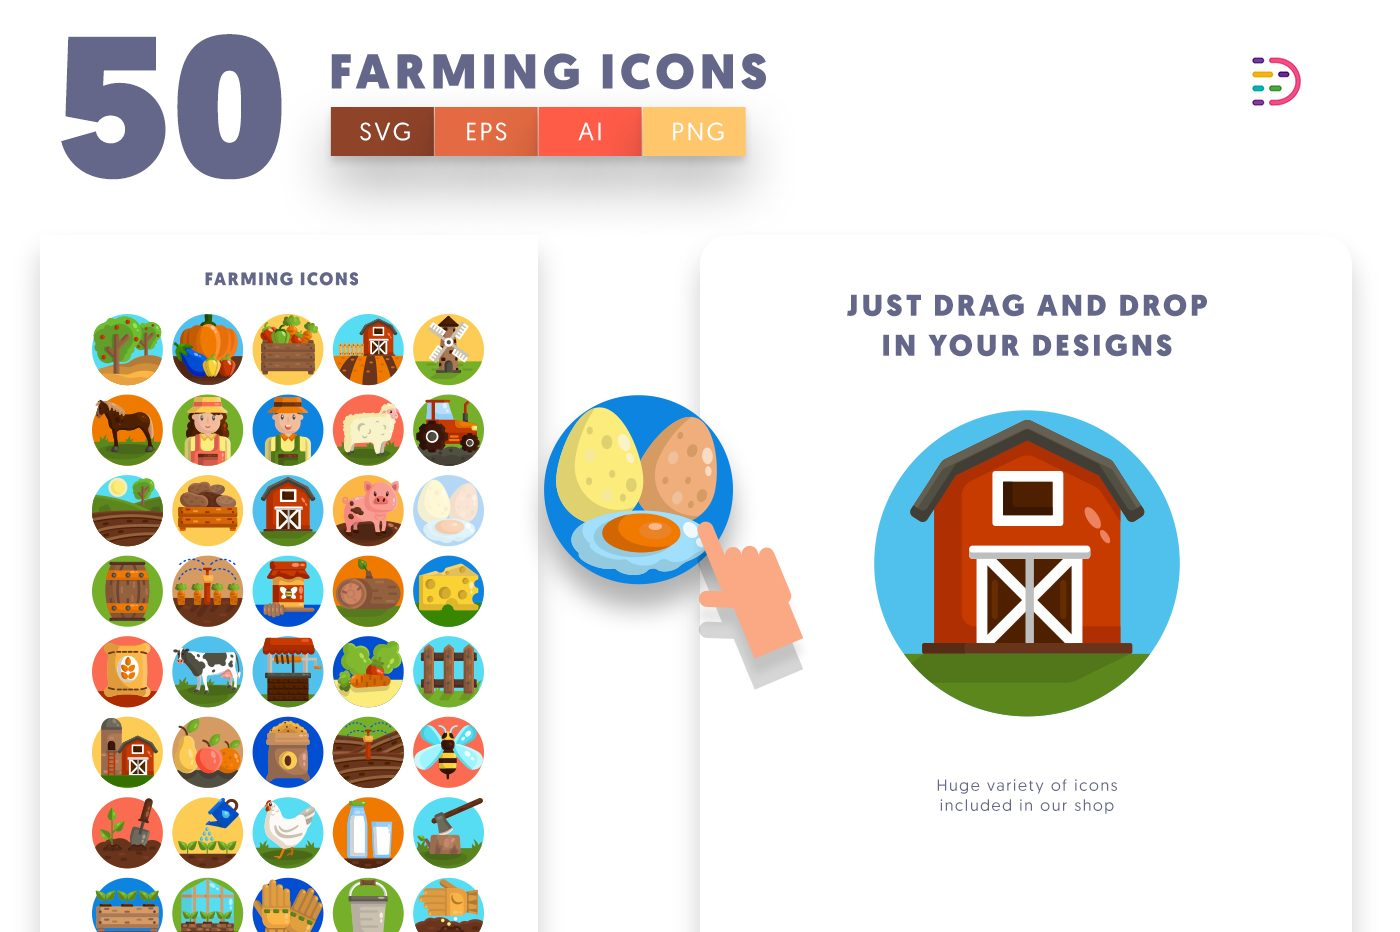 Drag and drop vector 50 Farming Icons